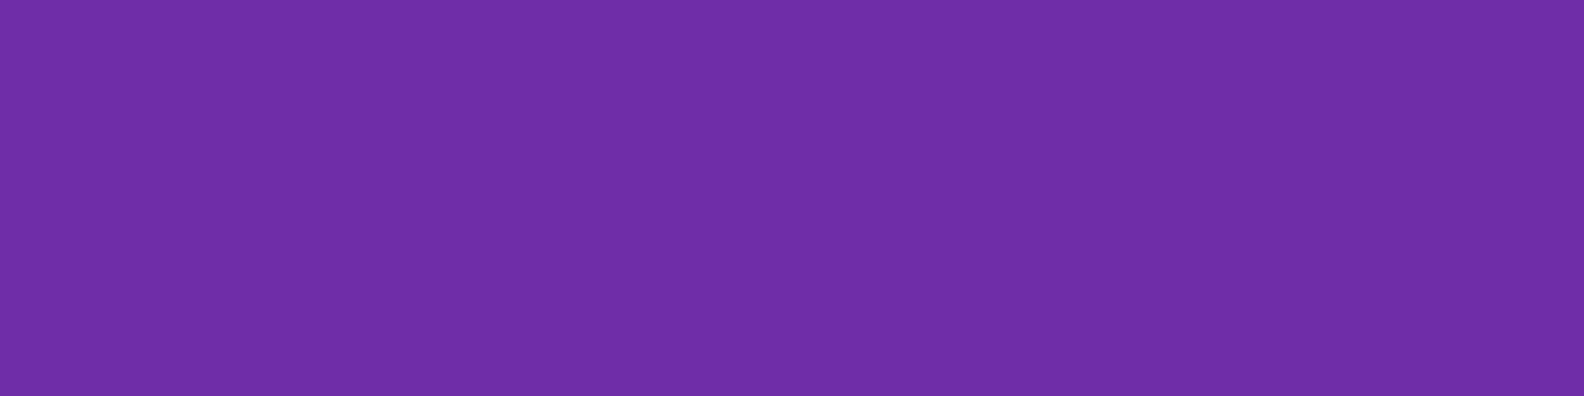 1584x396 Grape Solid Color Background